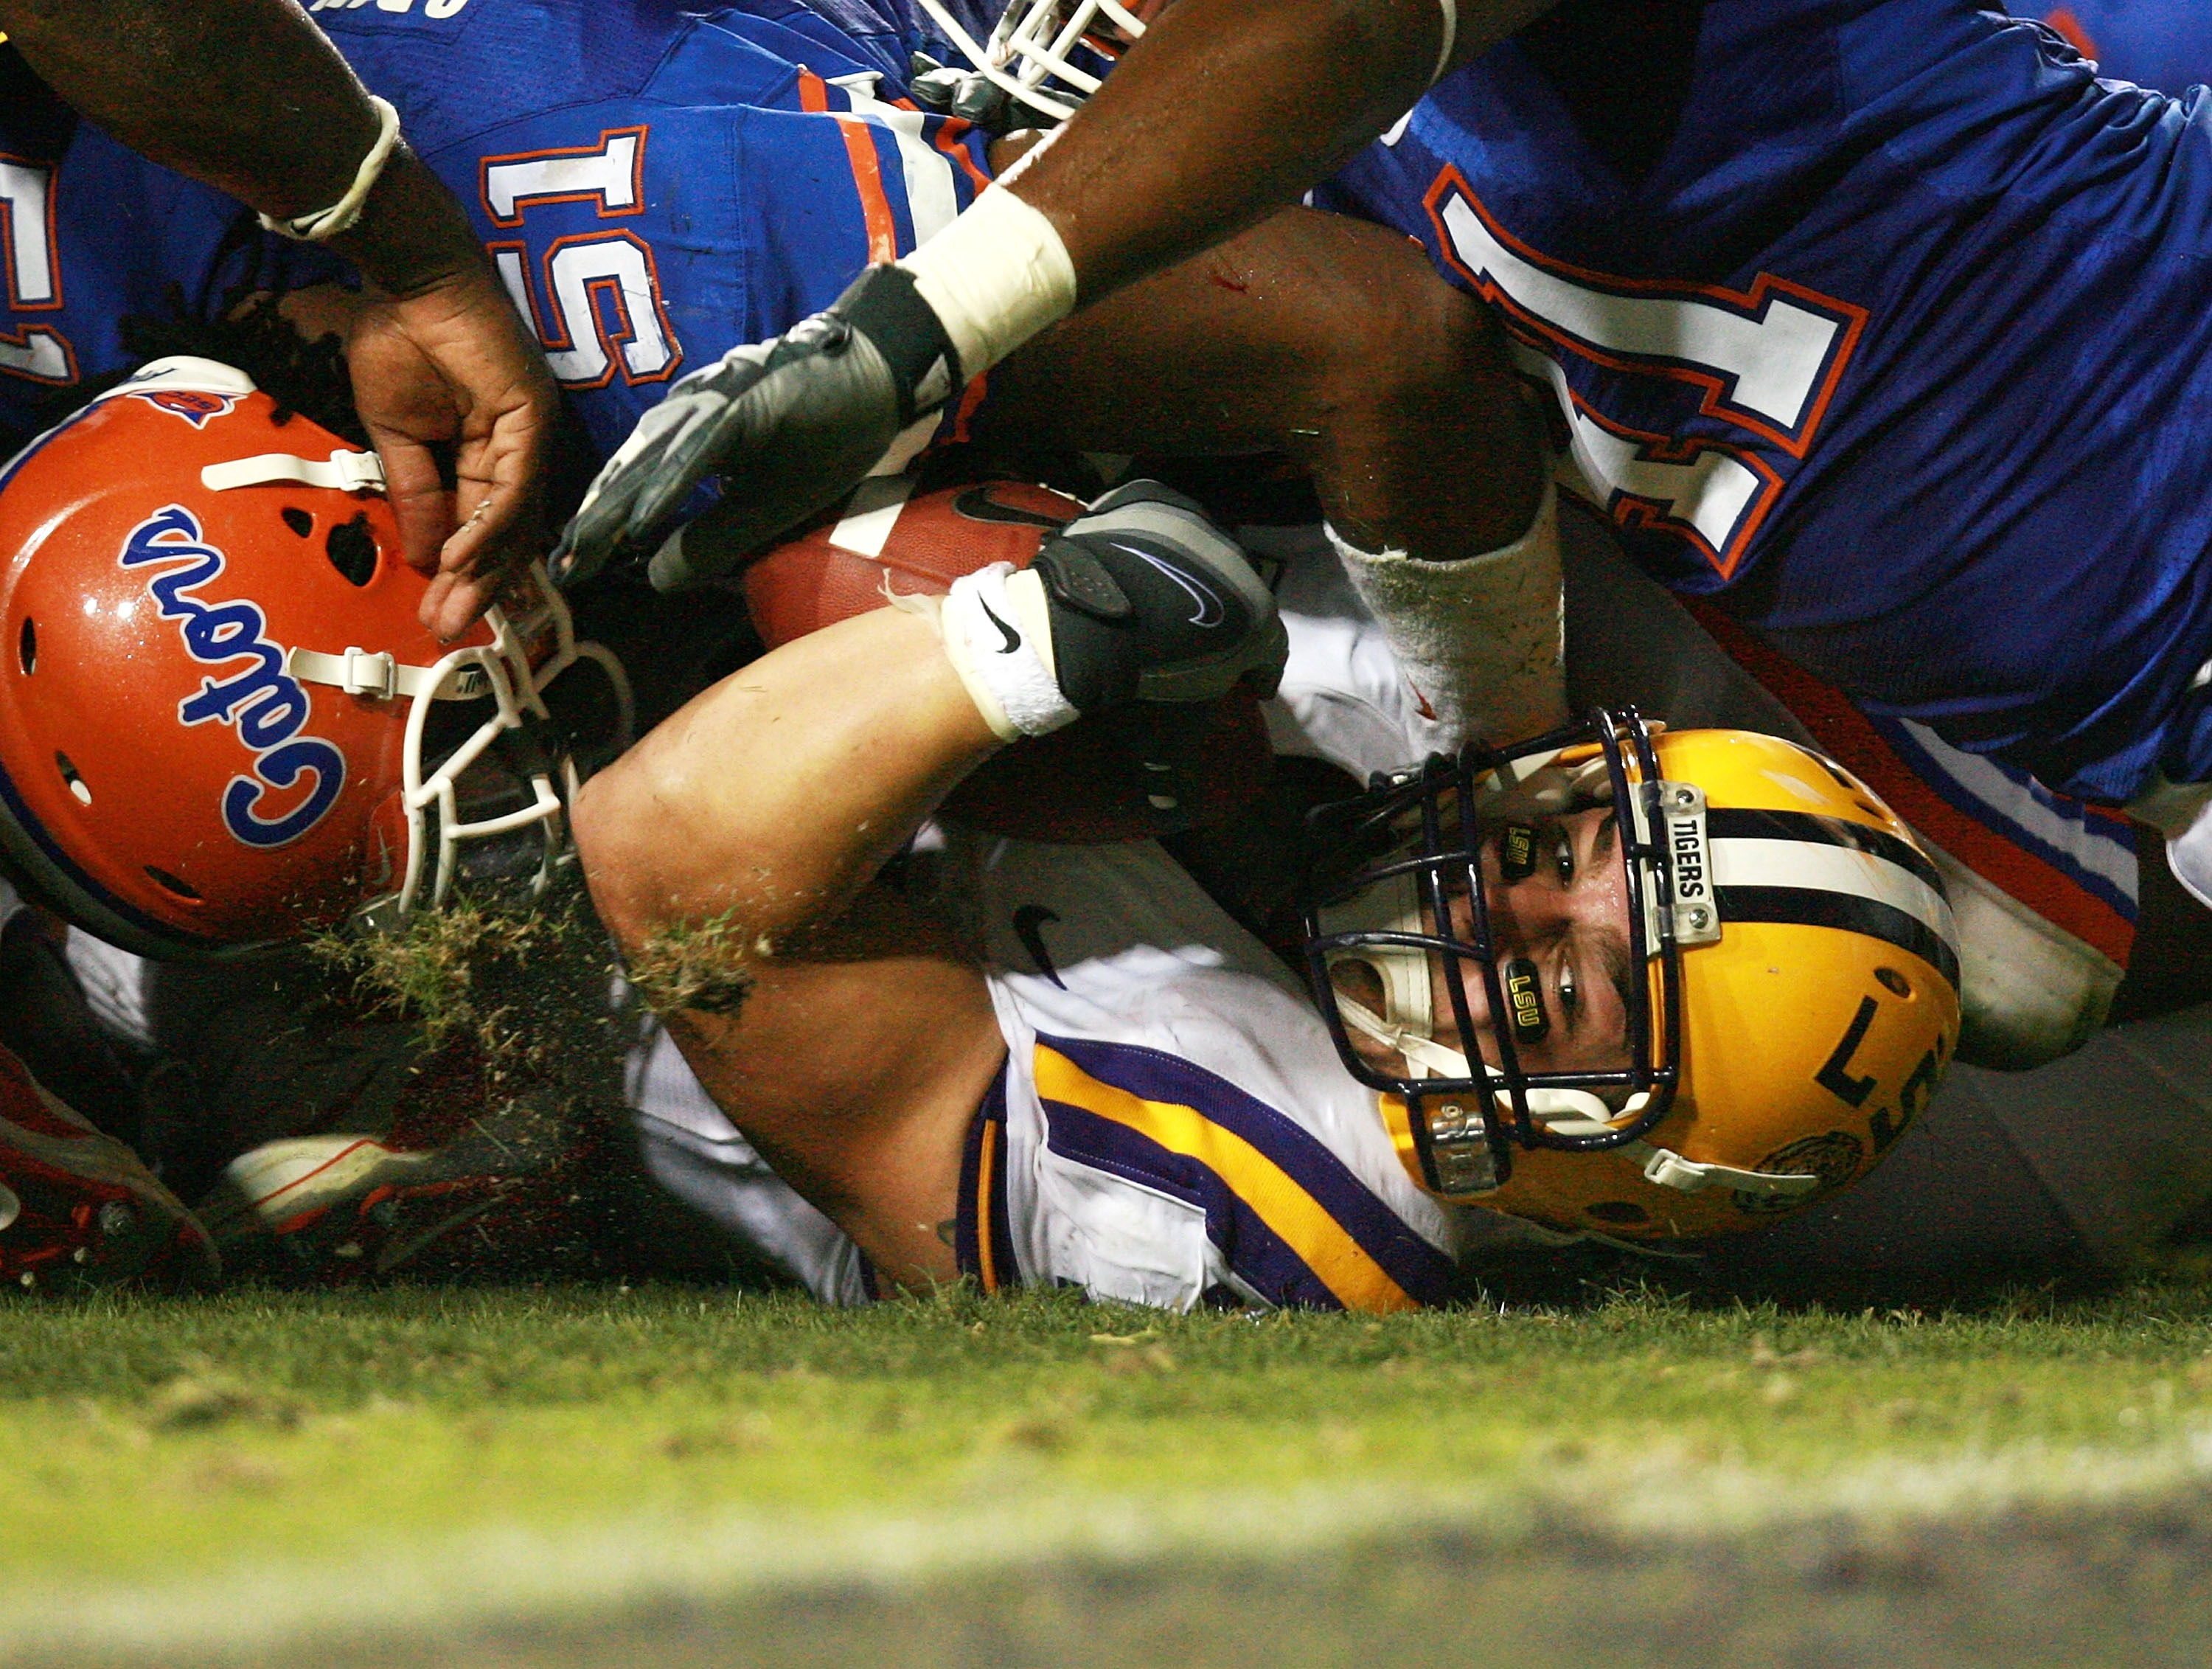 BATON ROUGE, LA - OCTOBER 06:  Running back Jacob Hester #18 of the LSU Tigers looks toward the goalline as he comes up short against the Florida Gators at Tiger Stadium on October 6, 2007 in Baton Rouge, Louisiana.  (Photo by Doug Benc/Getty Images)